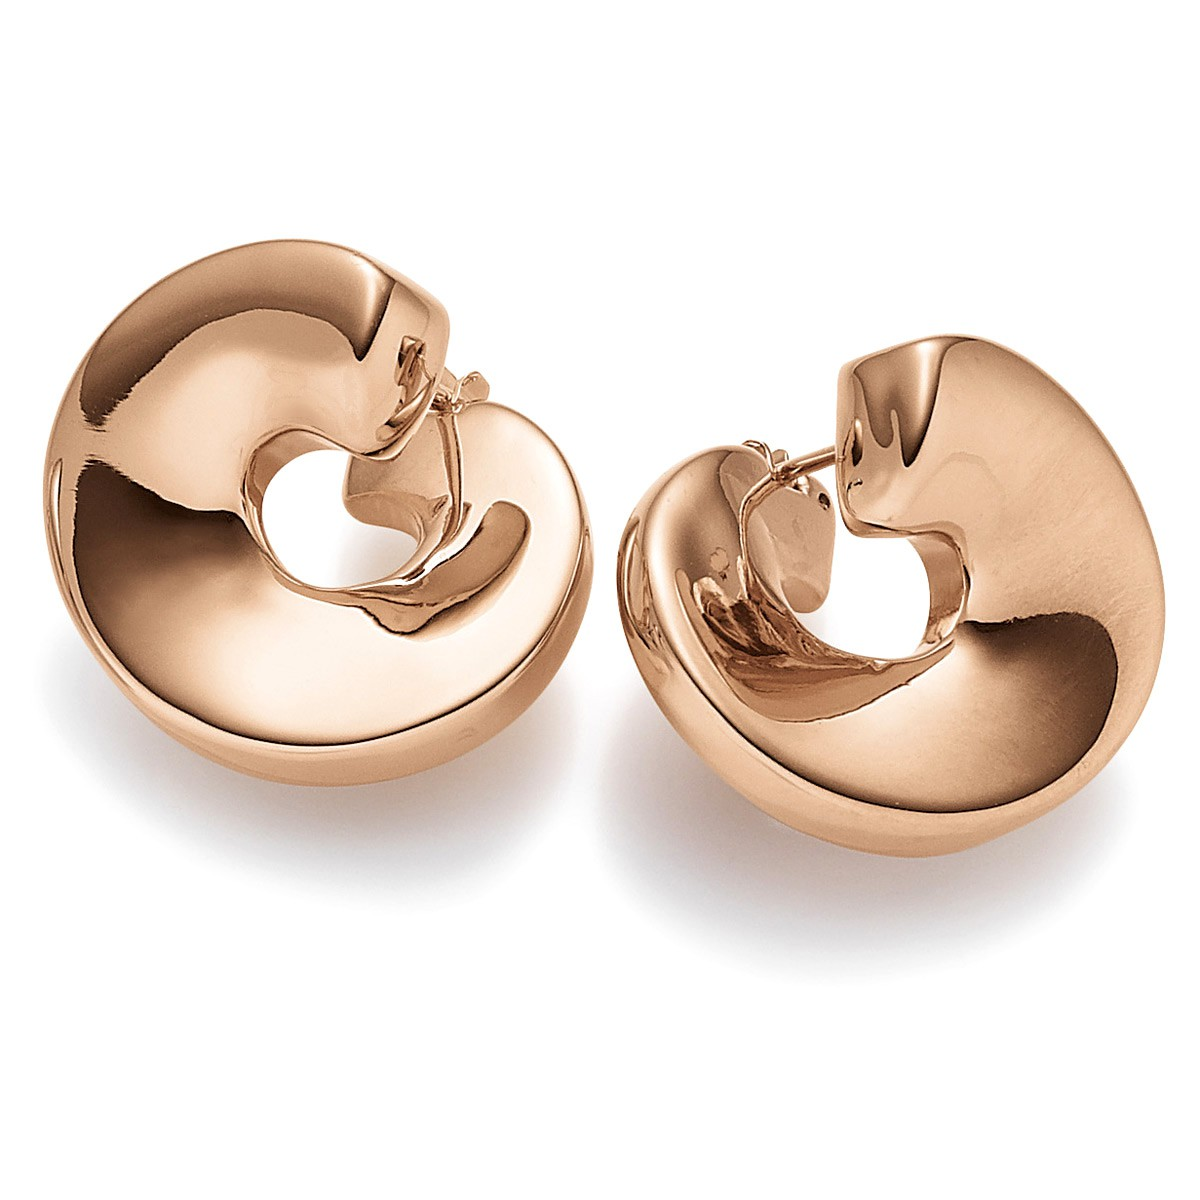 earrings spiral twister earrings from 585 gold rose gold shiny ladies ebay. Black Bedroom Furniture Sets. Home Design Ideas